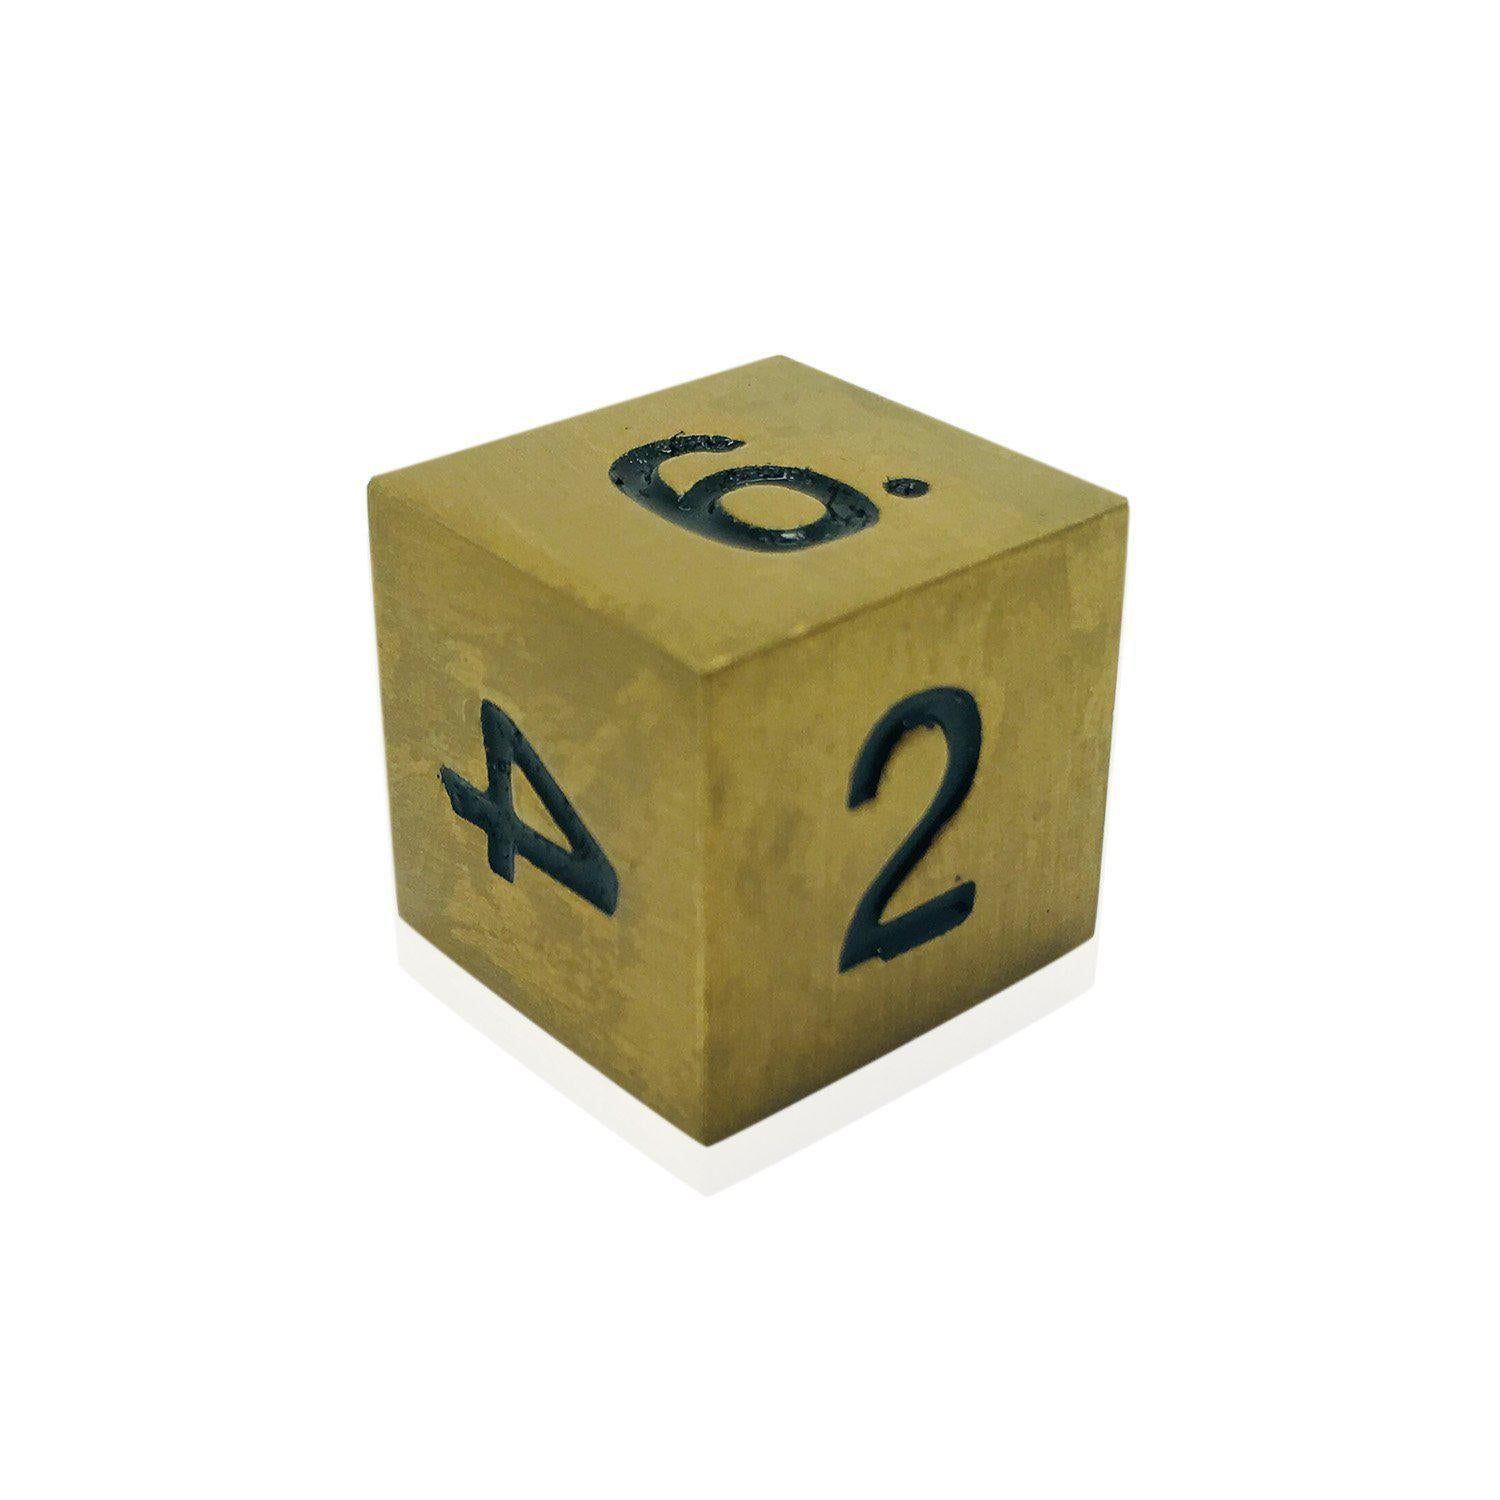 Single Alloy D6 in Dragons Gold by Norse Foundry-Dice-Norse Foundry-DND Dice-Polyhedral Dice-D20-Metal Dice-Precision Dice-Luxury Dice-Dungeons and Dragons-D&D-